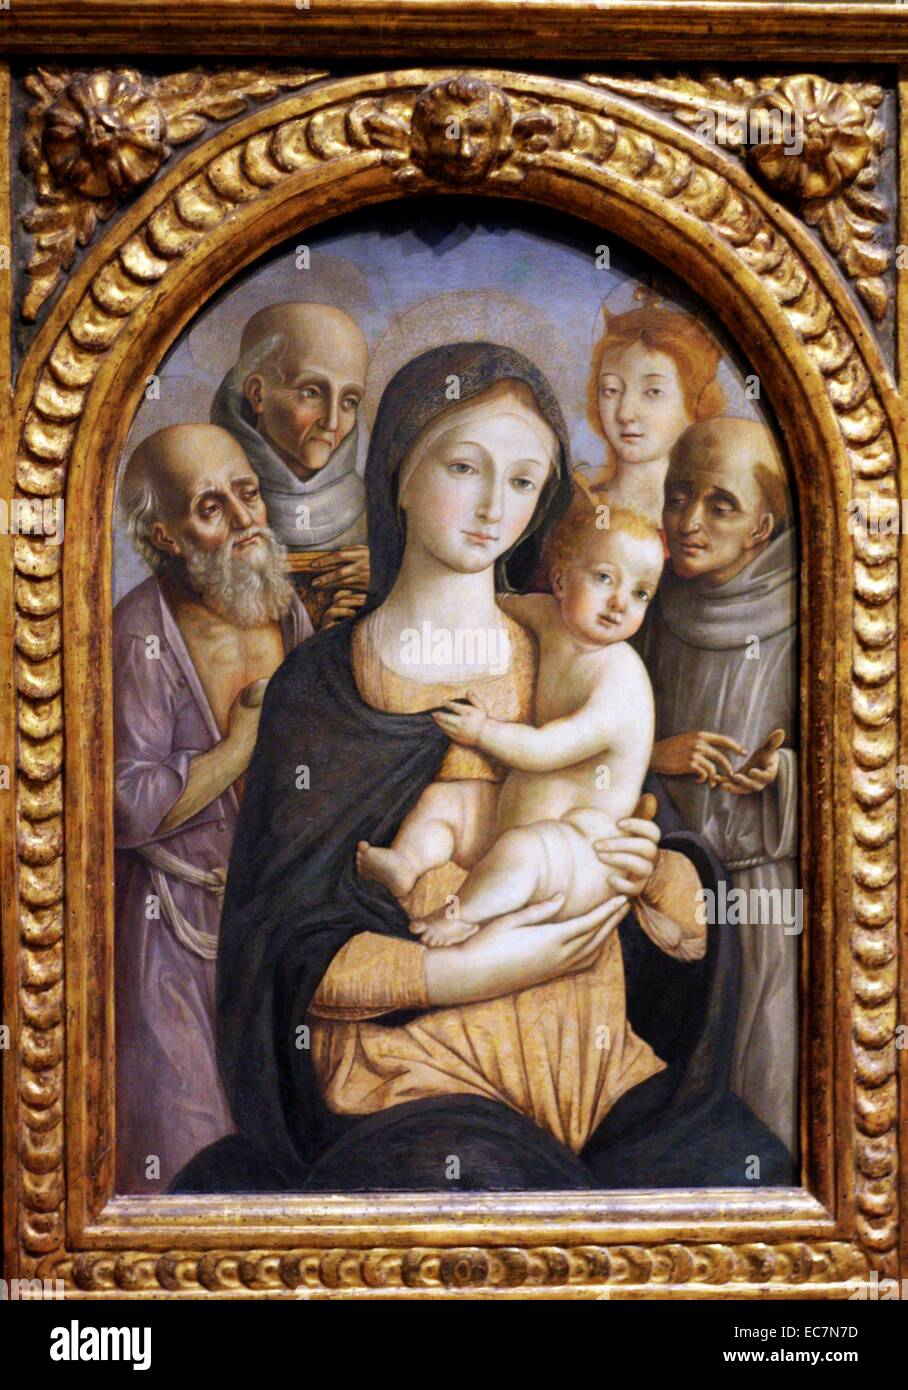 The Virgin Child with Four Saints by Pietro Orioli . - Stock Image